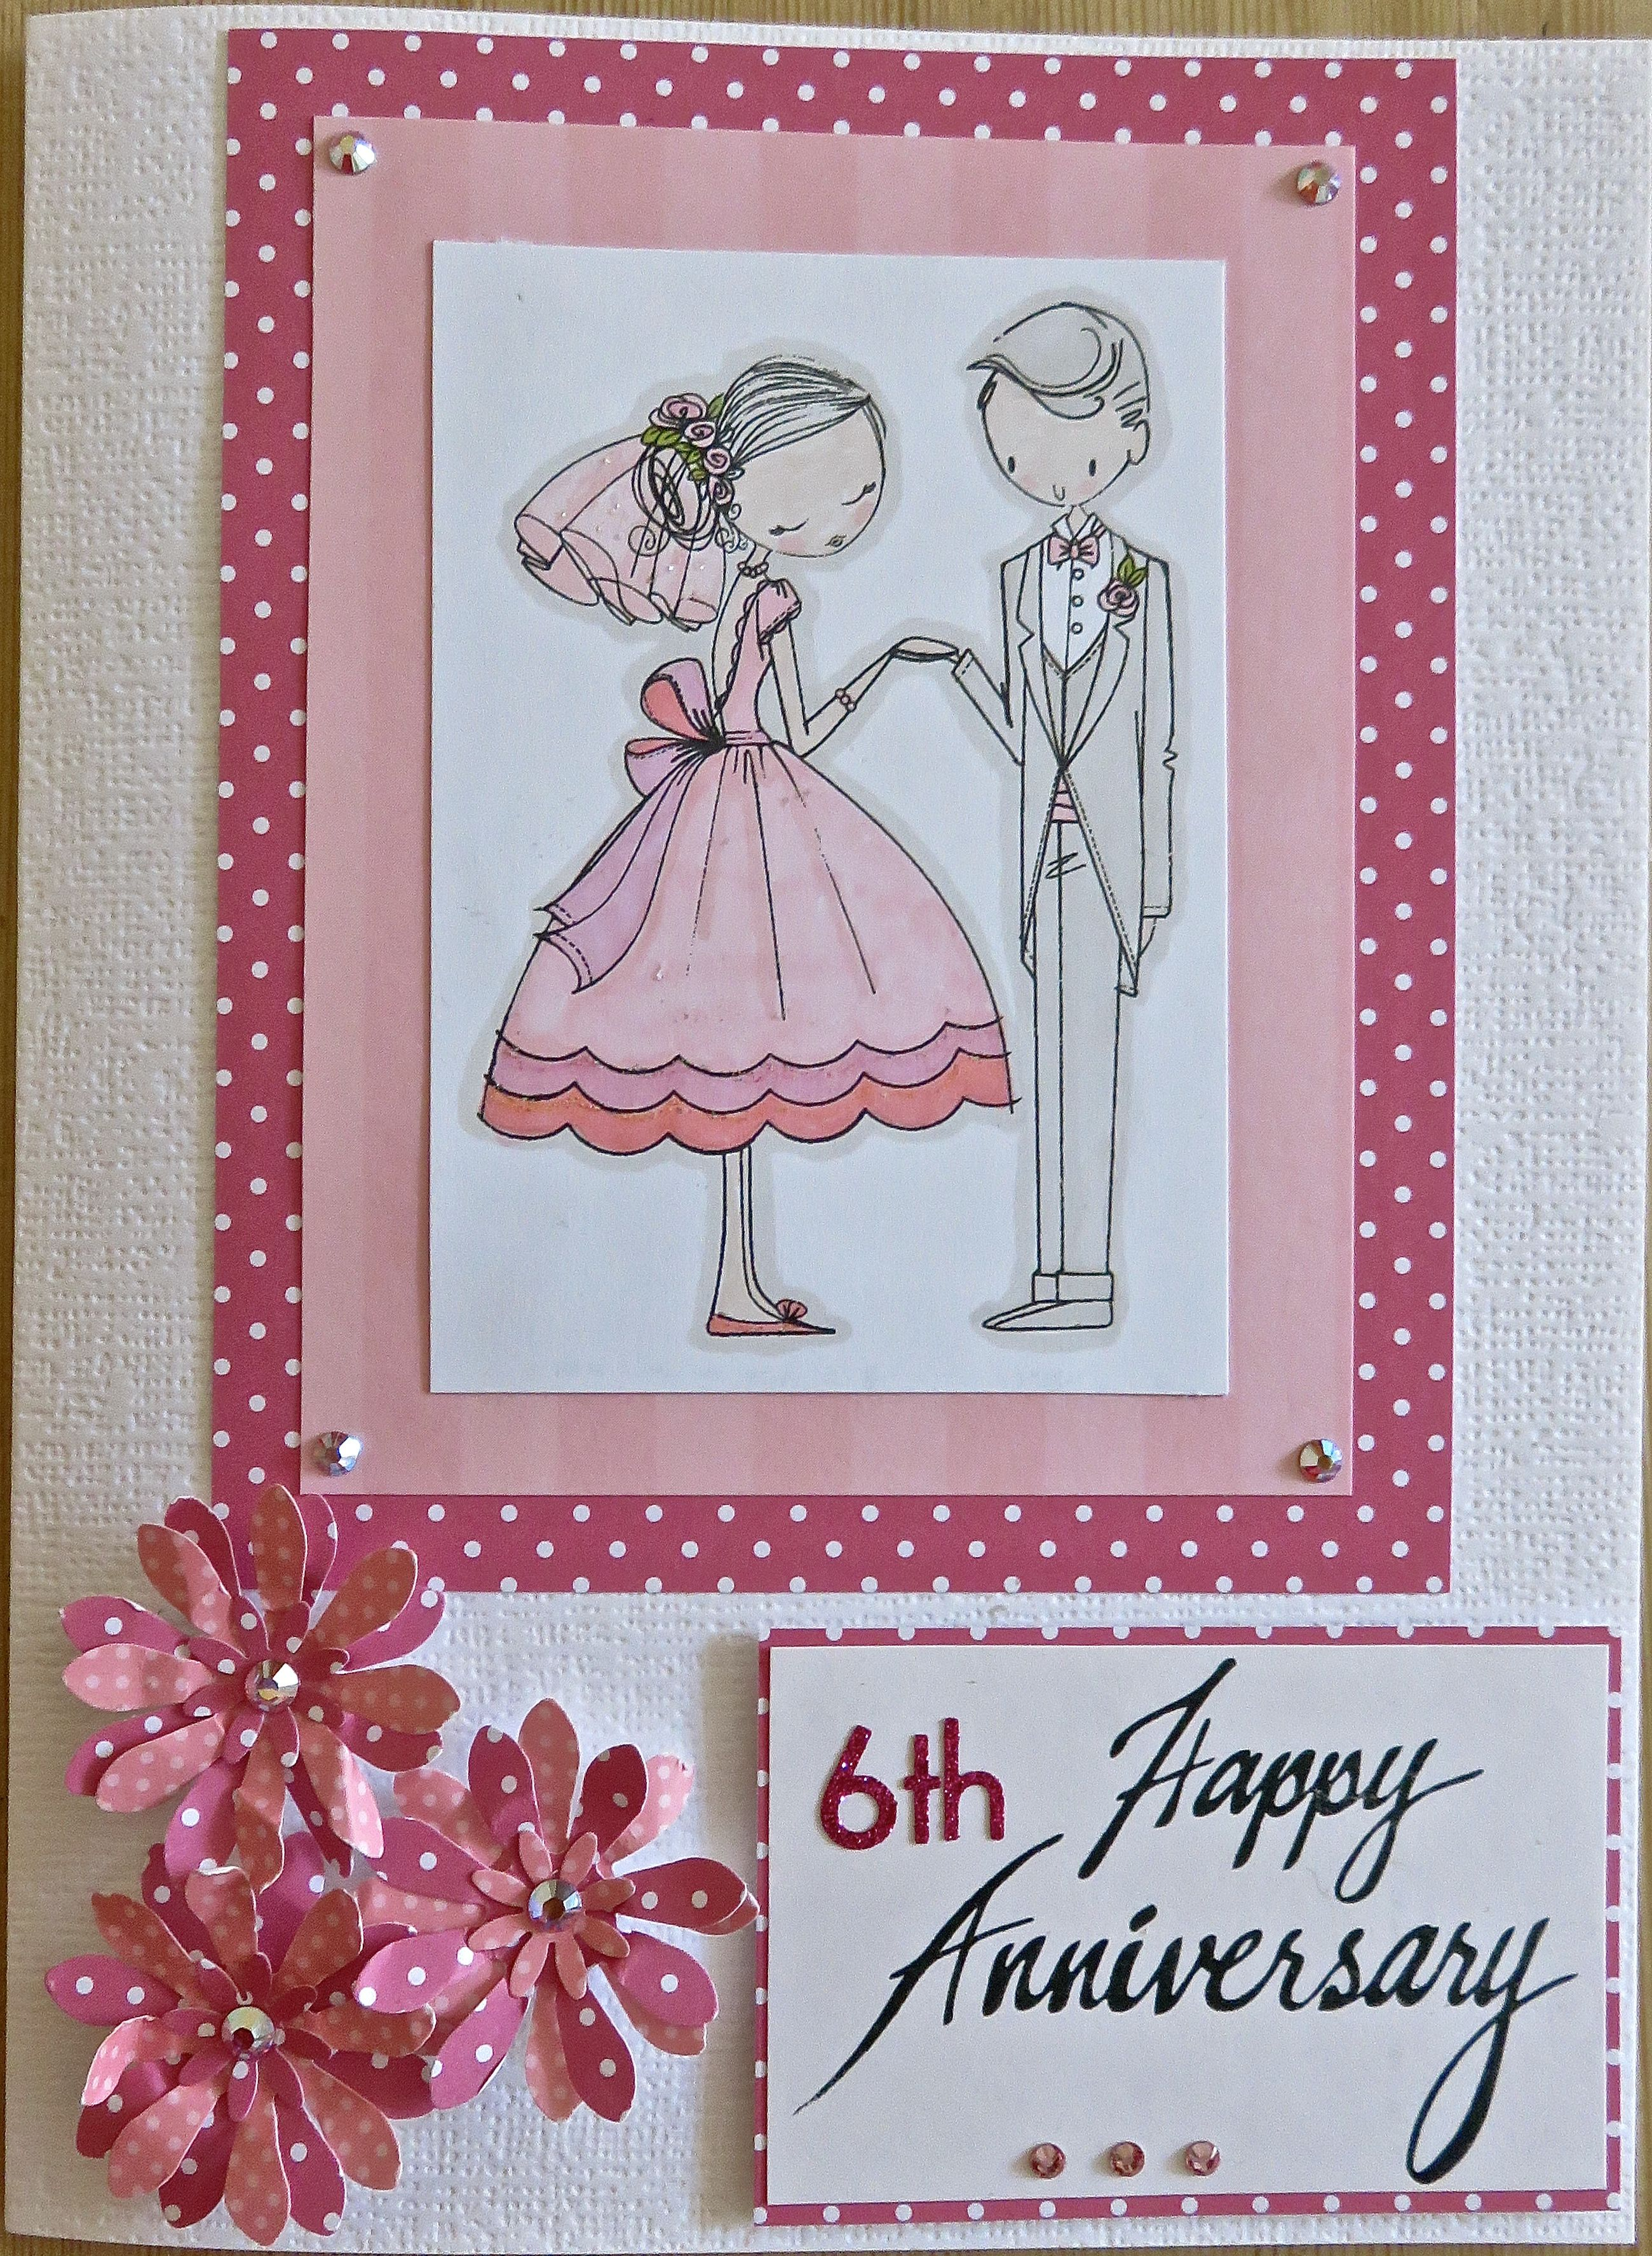 6th Wedding Anniversary Card for my daughter